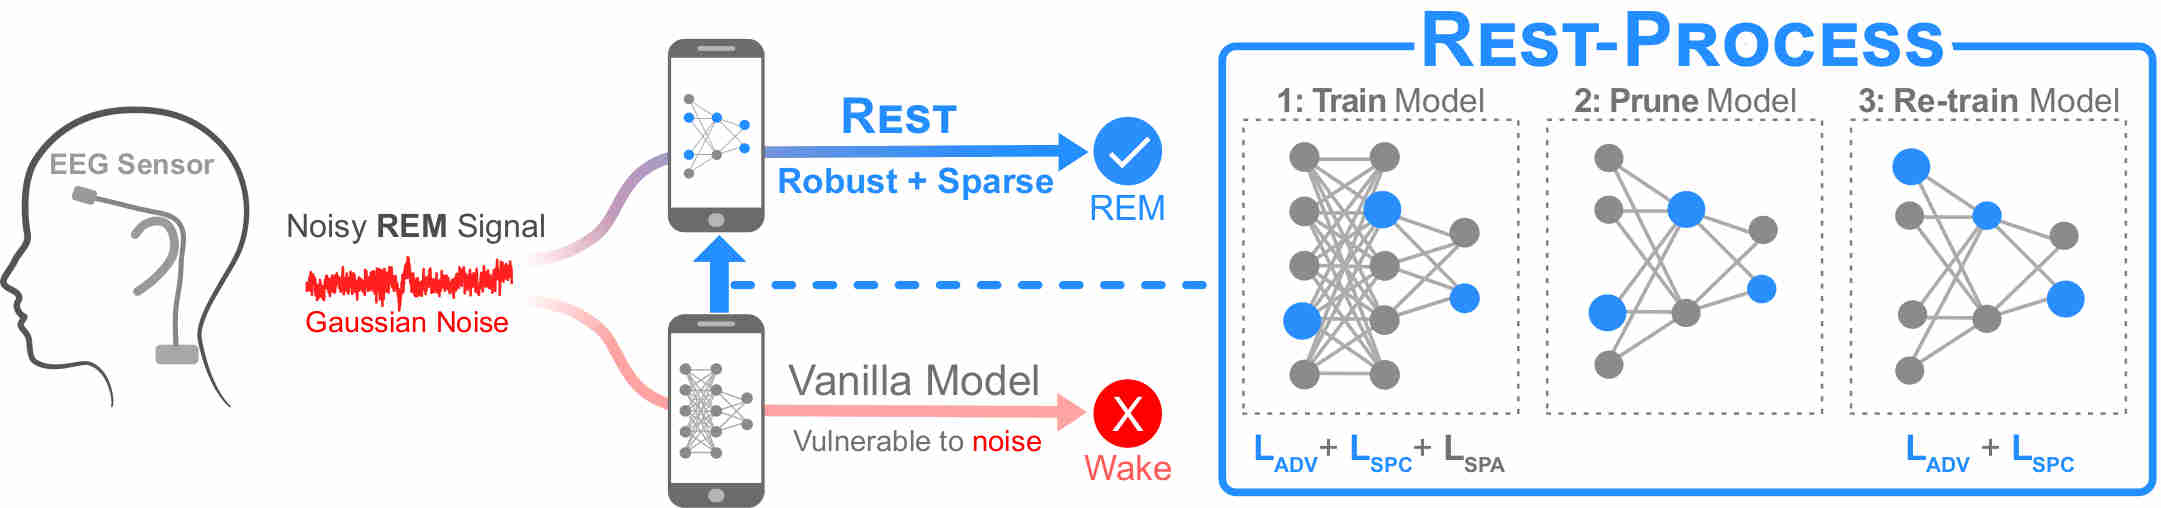 REST: Robust and Efficient Neural Networks for Sleep Monitoring in the Wild